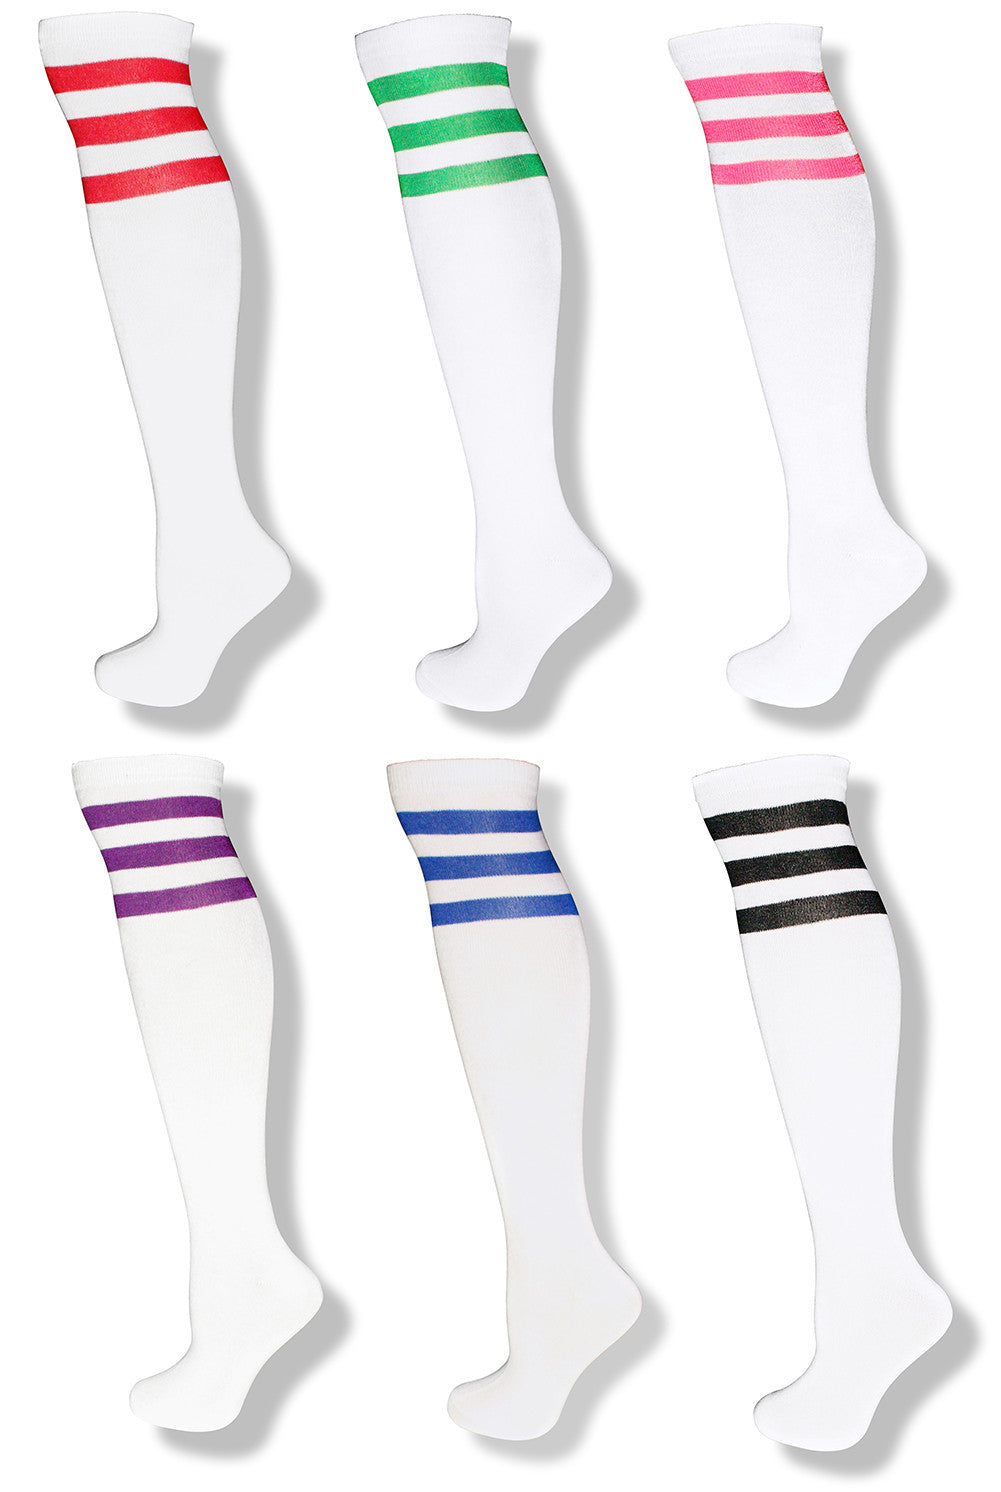 4bbf5f69a93 6 Pack Adult Unisex White Knee High Socks w  Colored Stripes.   29.99. White  with Neon ...